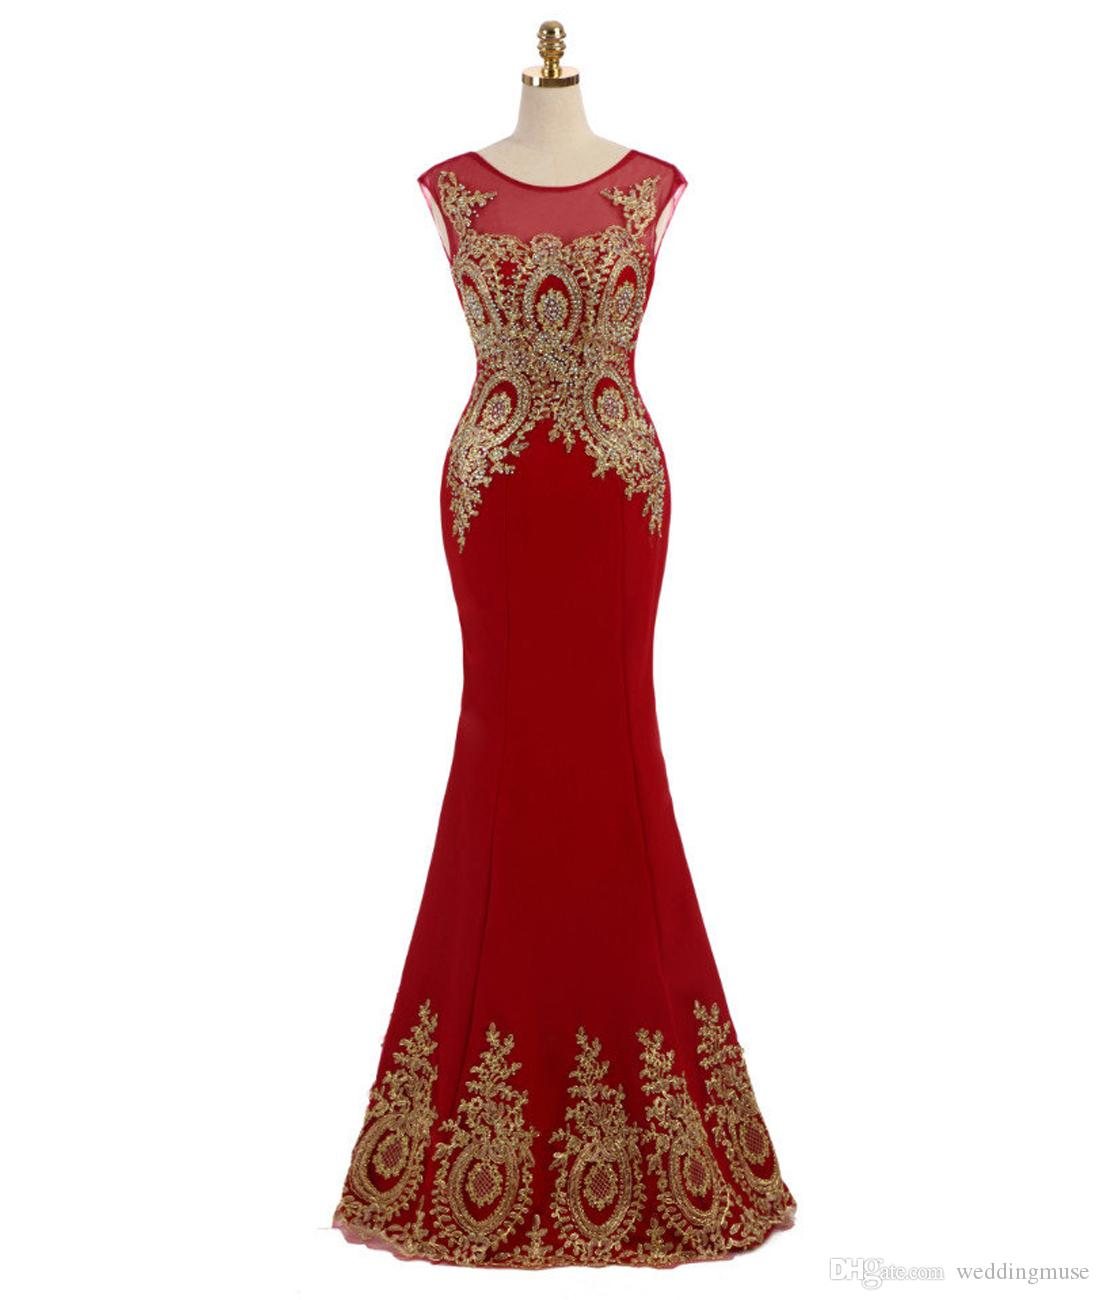 2020 Red Formal Evening Dresses Gold Lace Appliques Sequins Jewel Sleeveless Mermaid Court Train Plus Size Prom Evening Gown